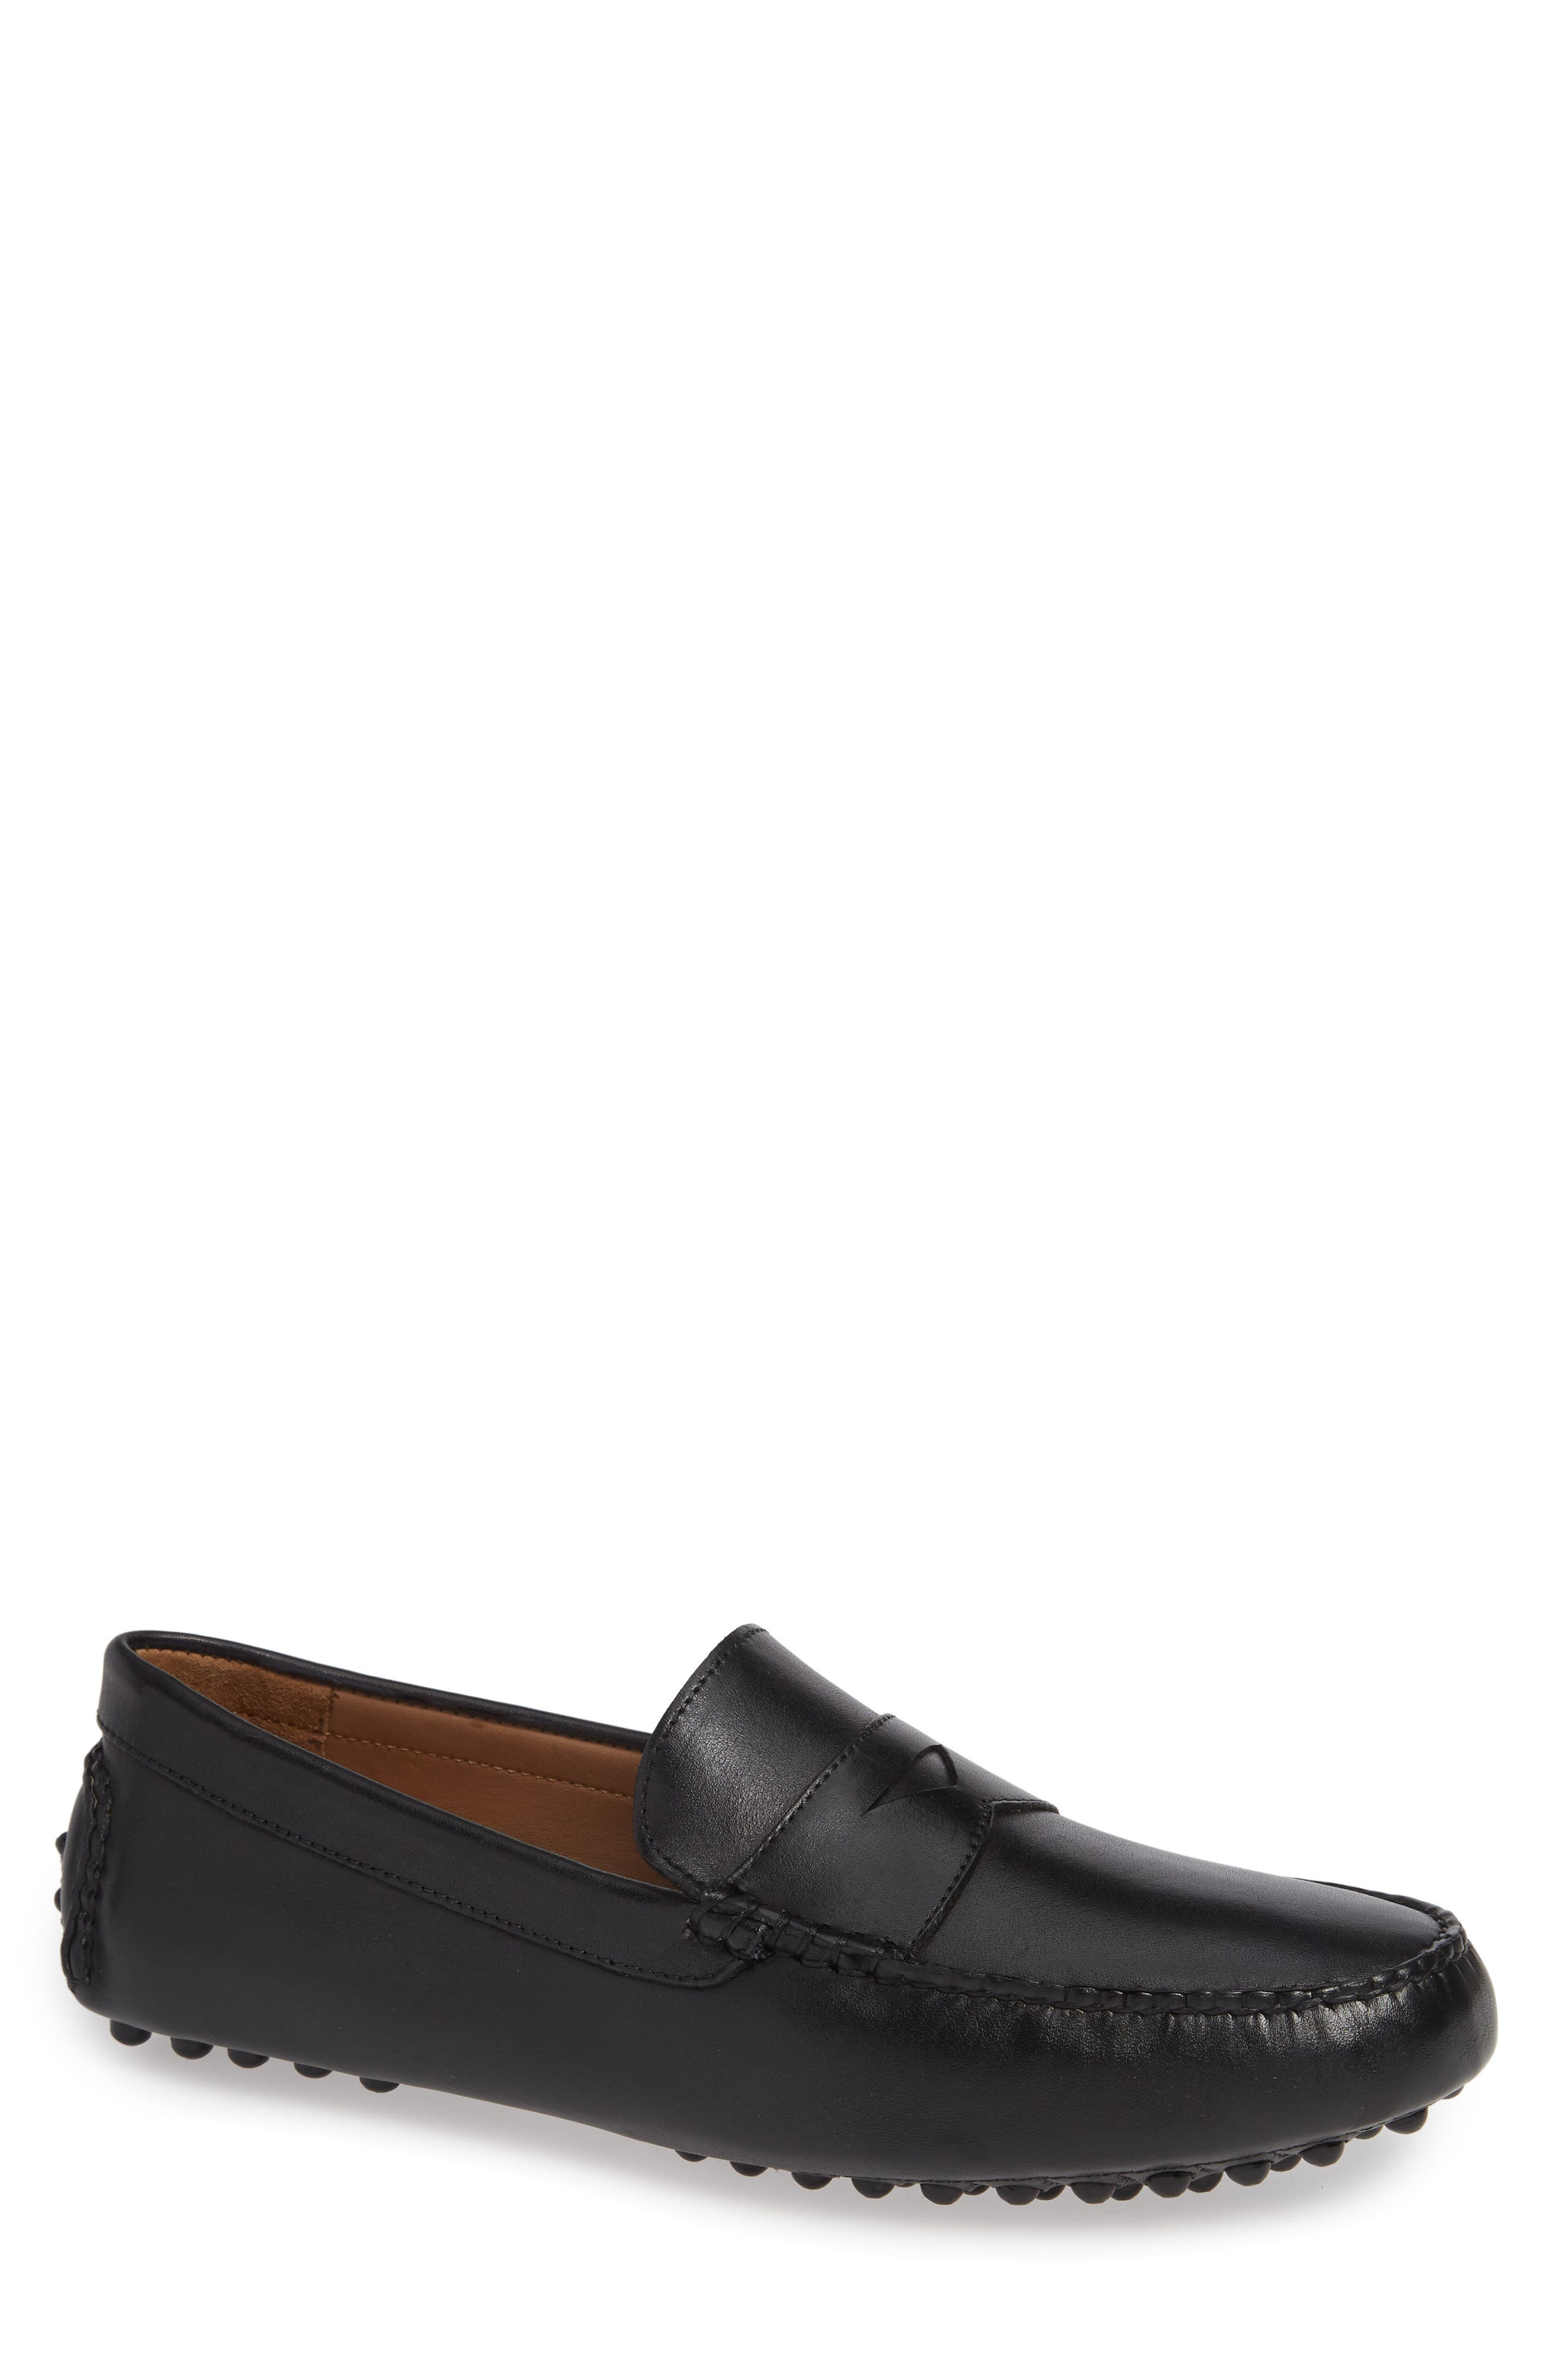 Patrick Driving Moccasin, Main, color, BLACK LEATHER